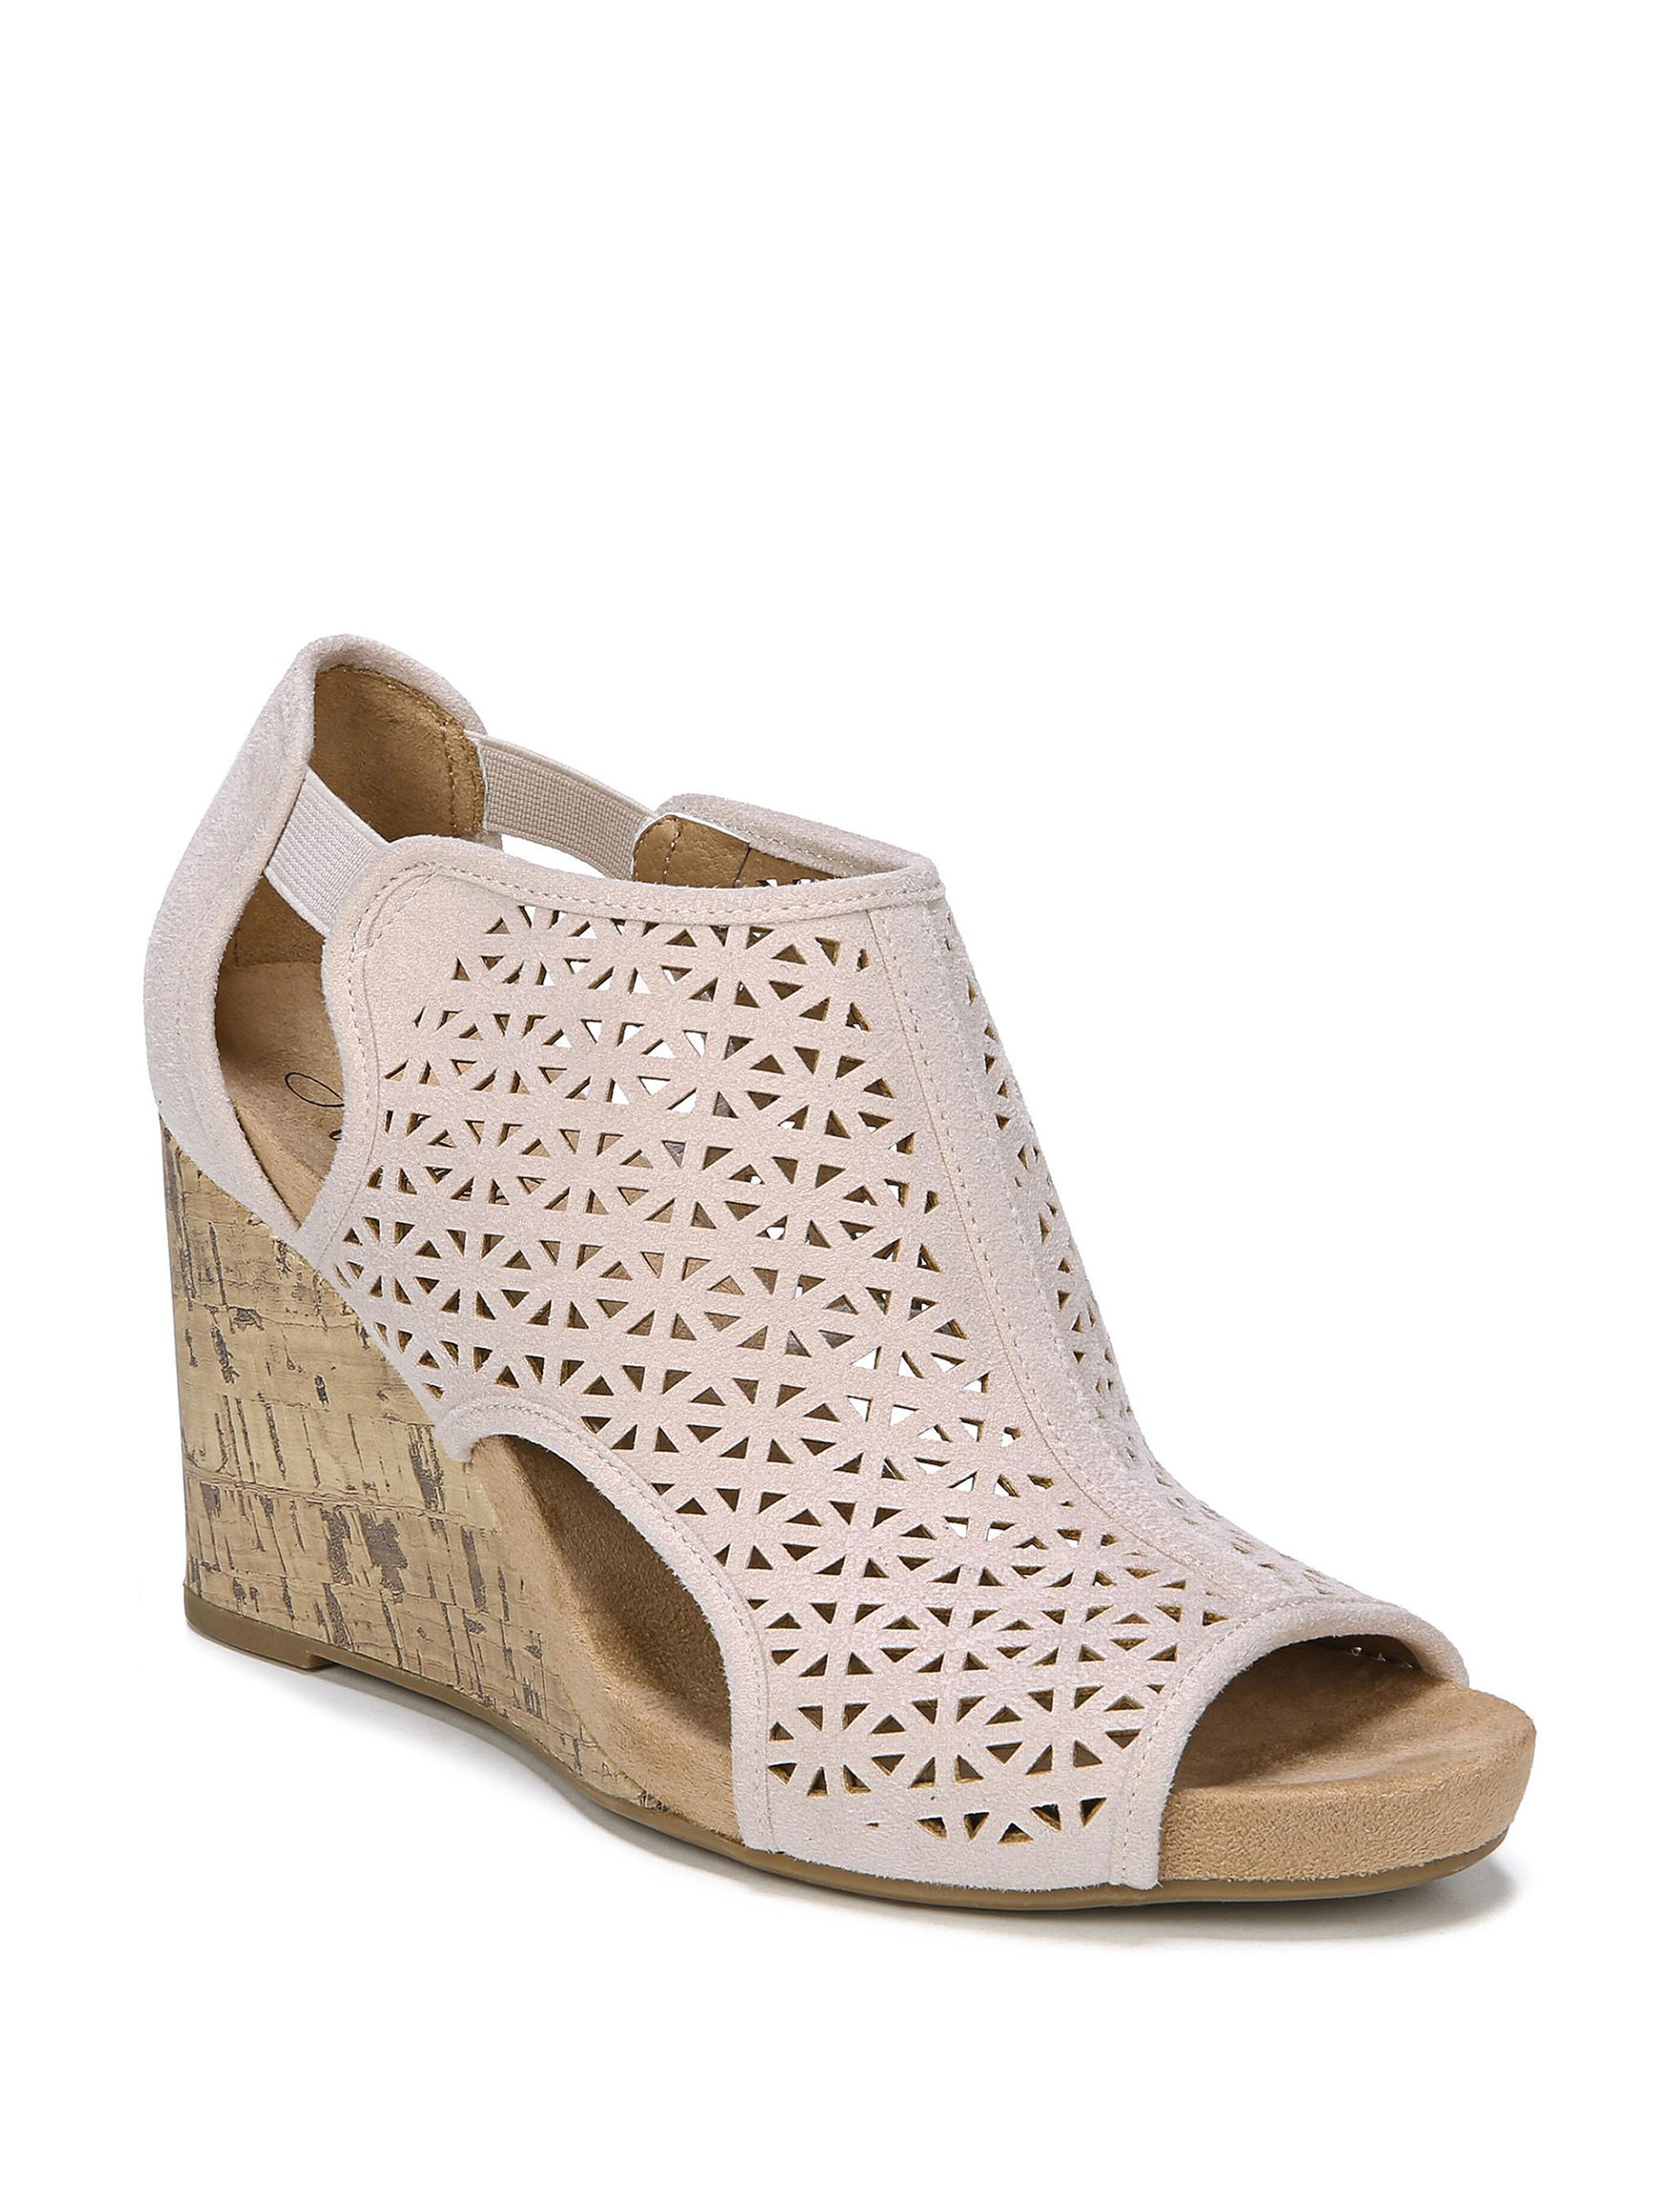 for edie best spirit details west comfort source wedge the of more pg lowest showitems easy sandals prices your comforter nine pz asp